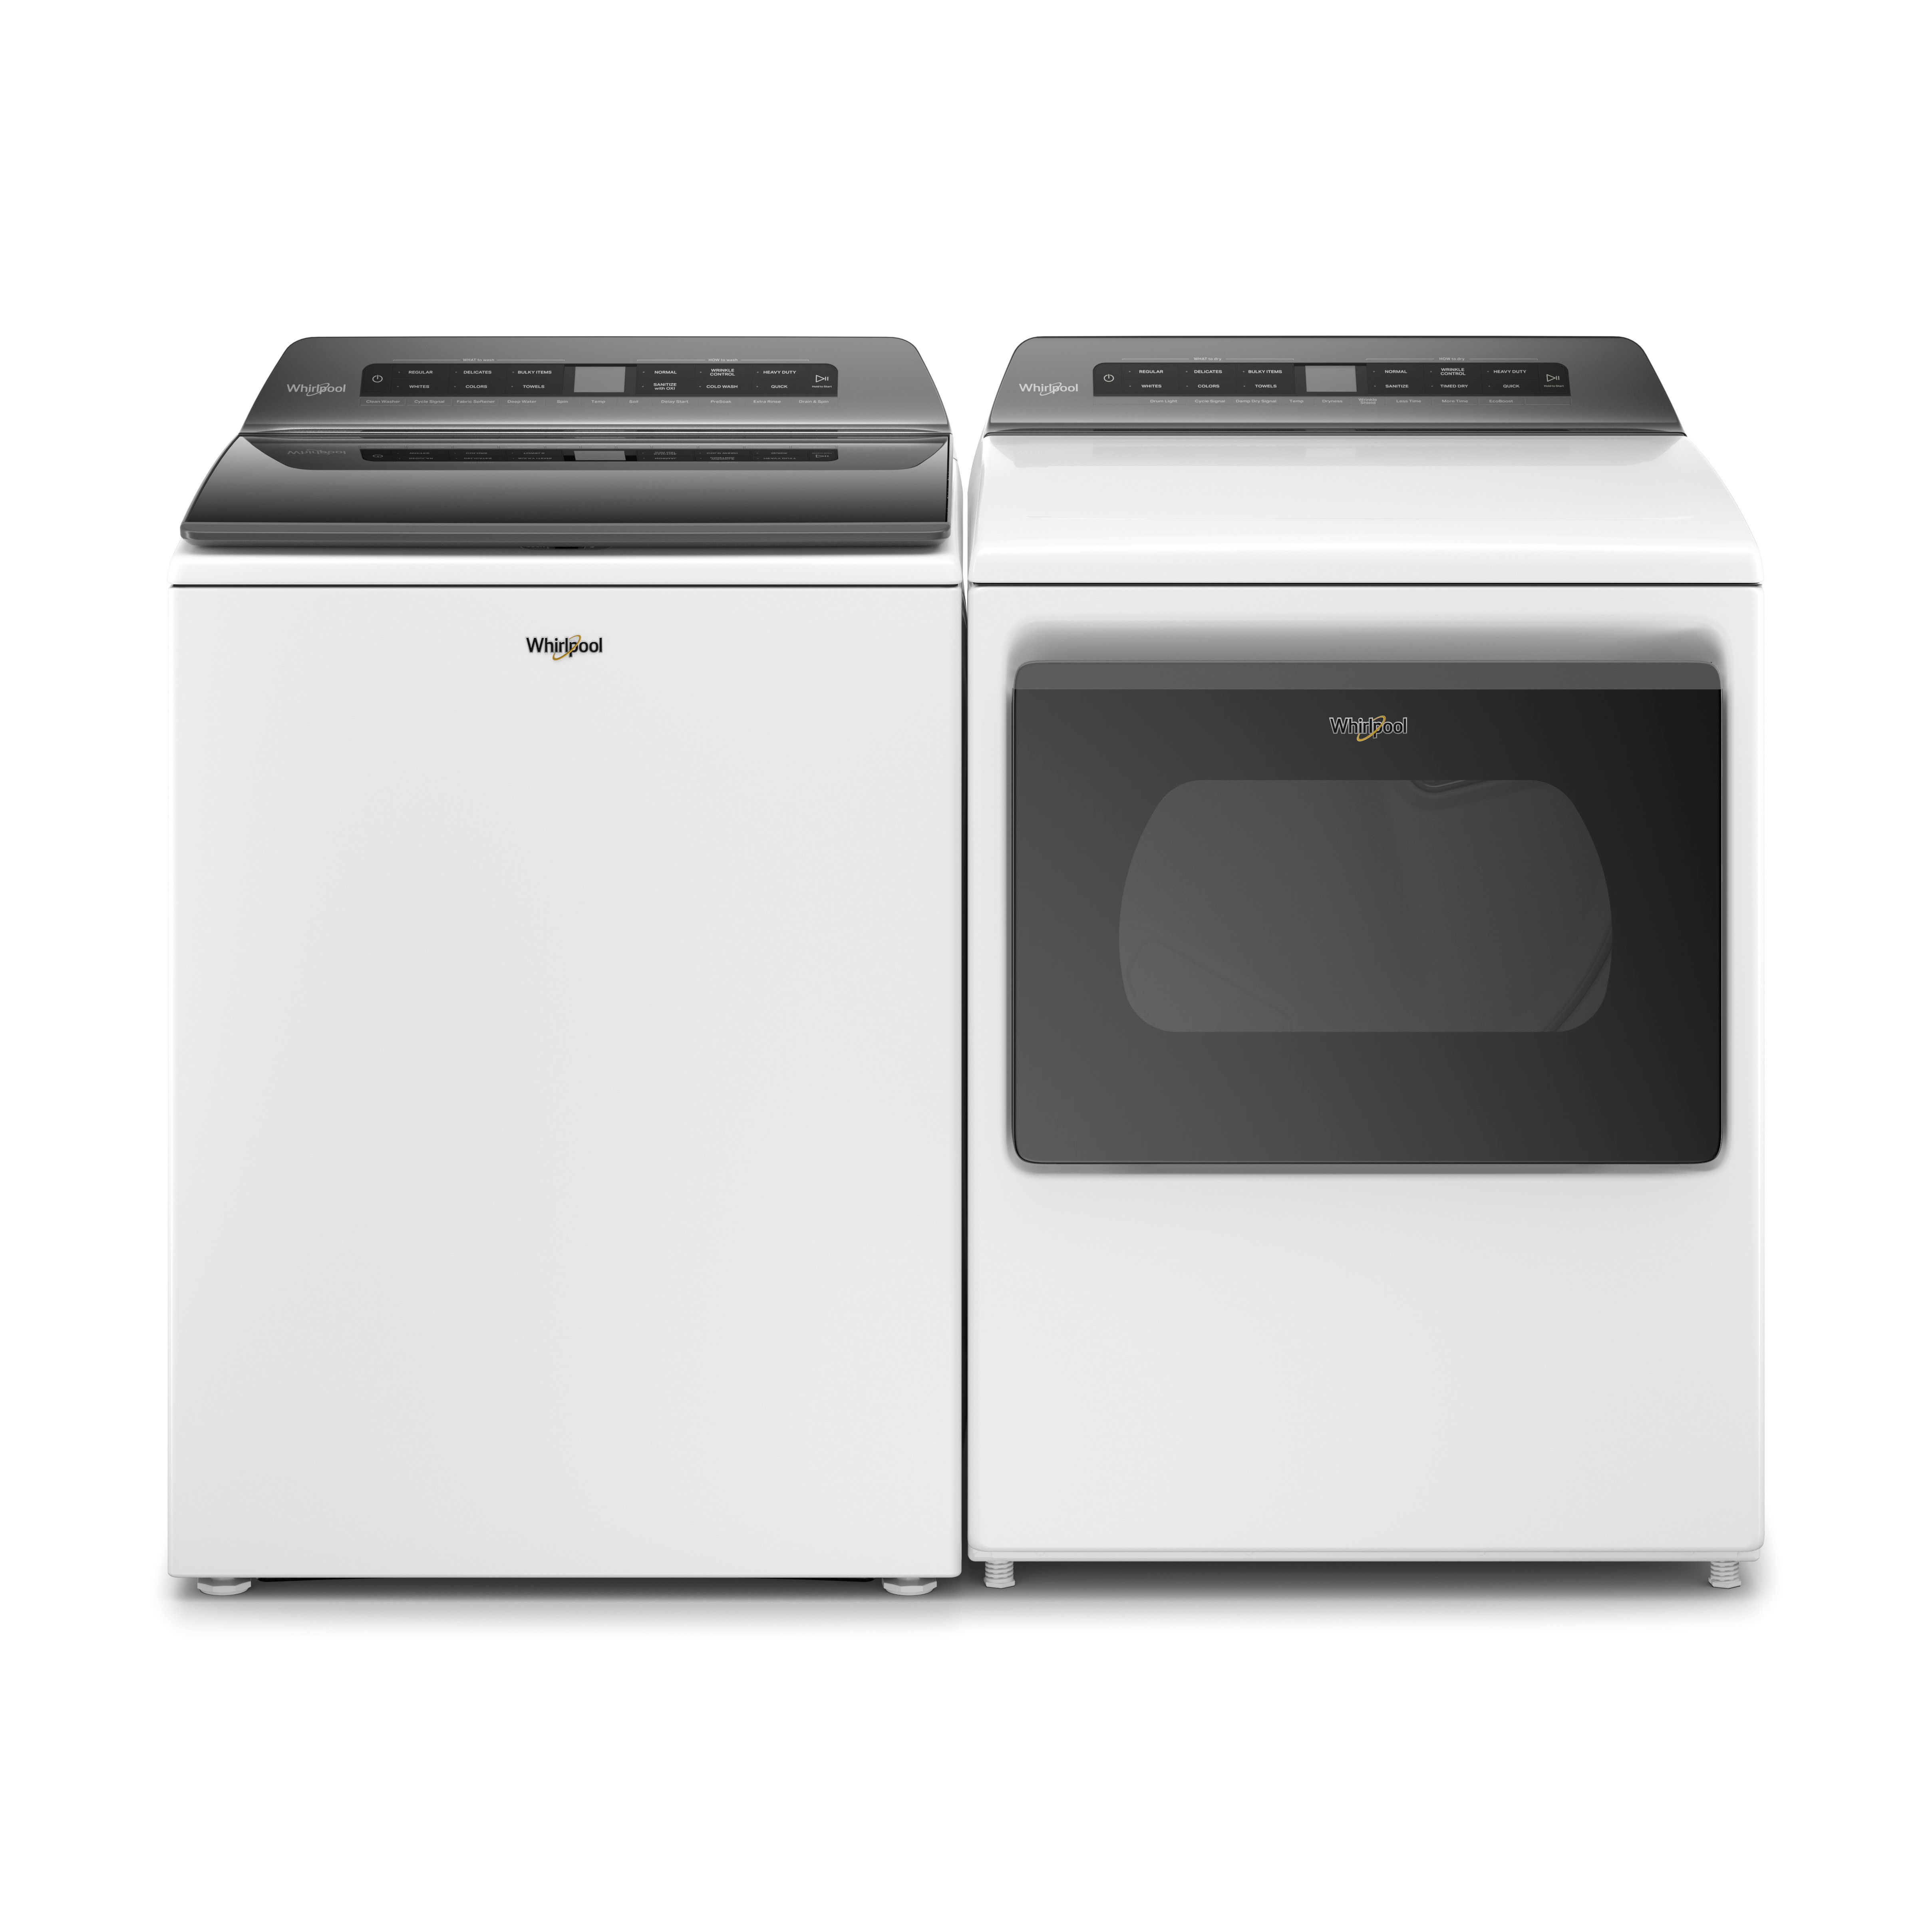 Whirlpool 4.7 Cu.Ft. Top Load Washer and 7.4 Cu. Ft. Electric Dryer